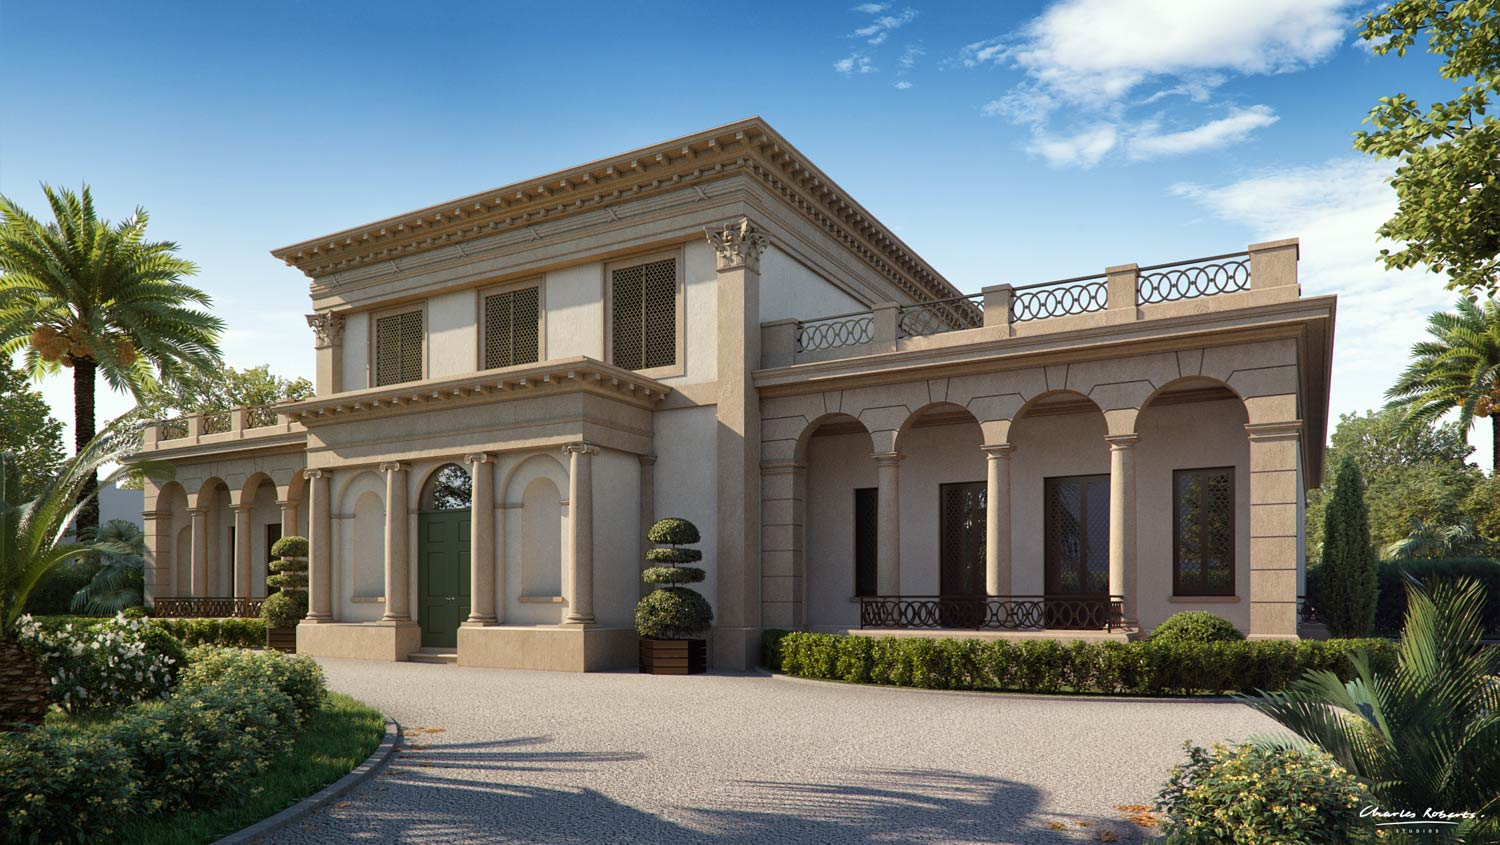 3d visualisation of the front elevation